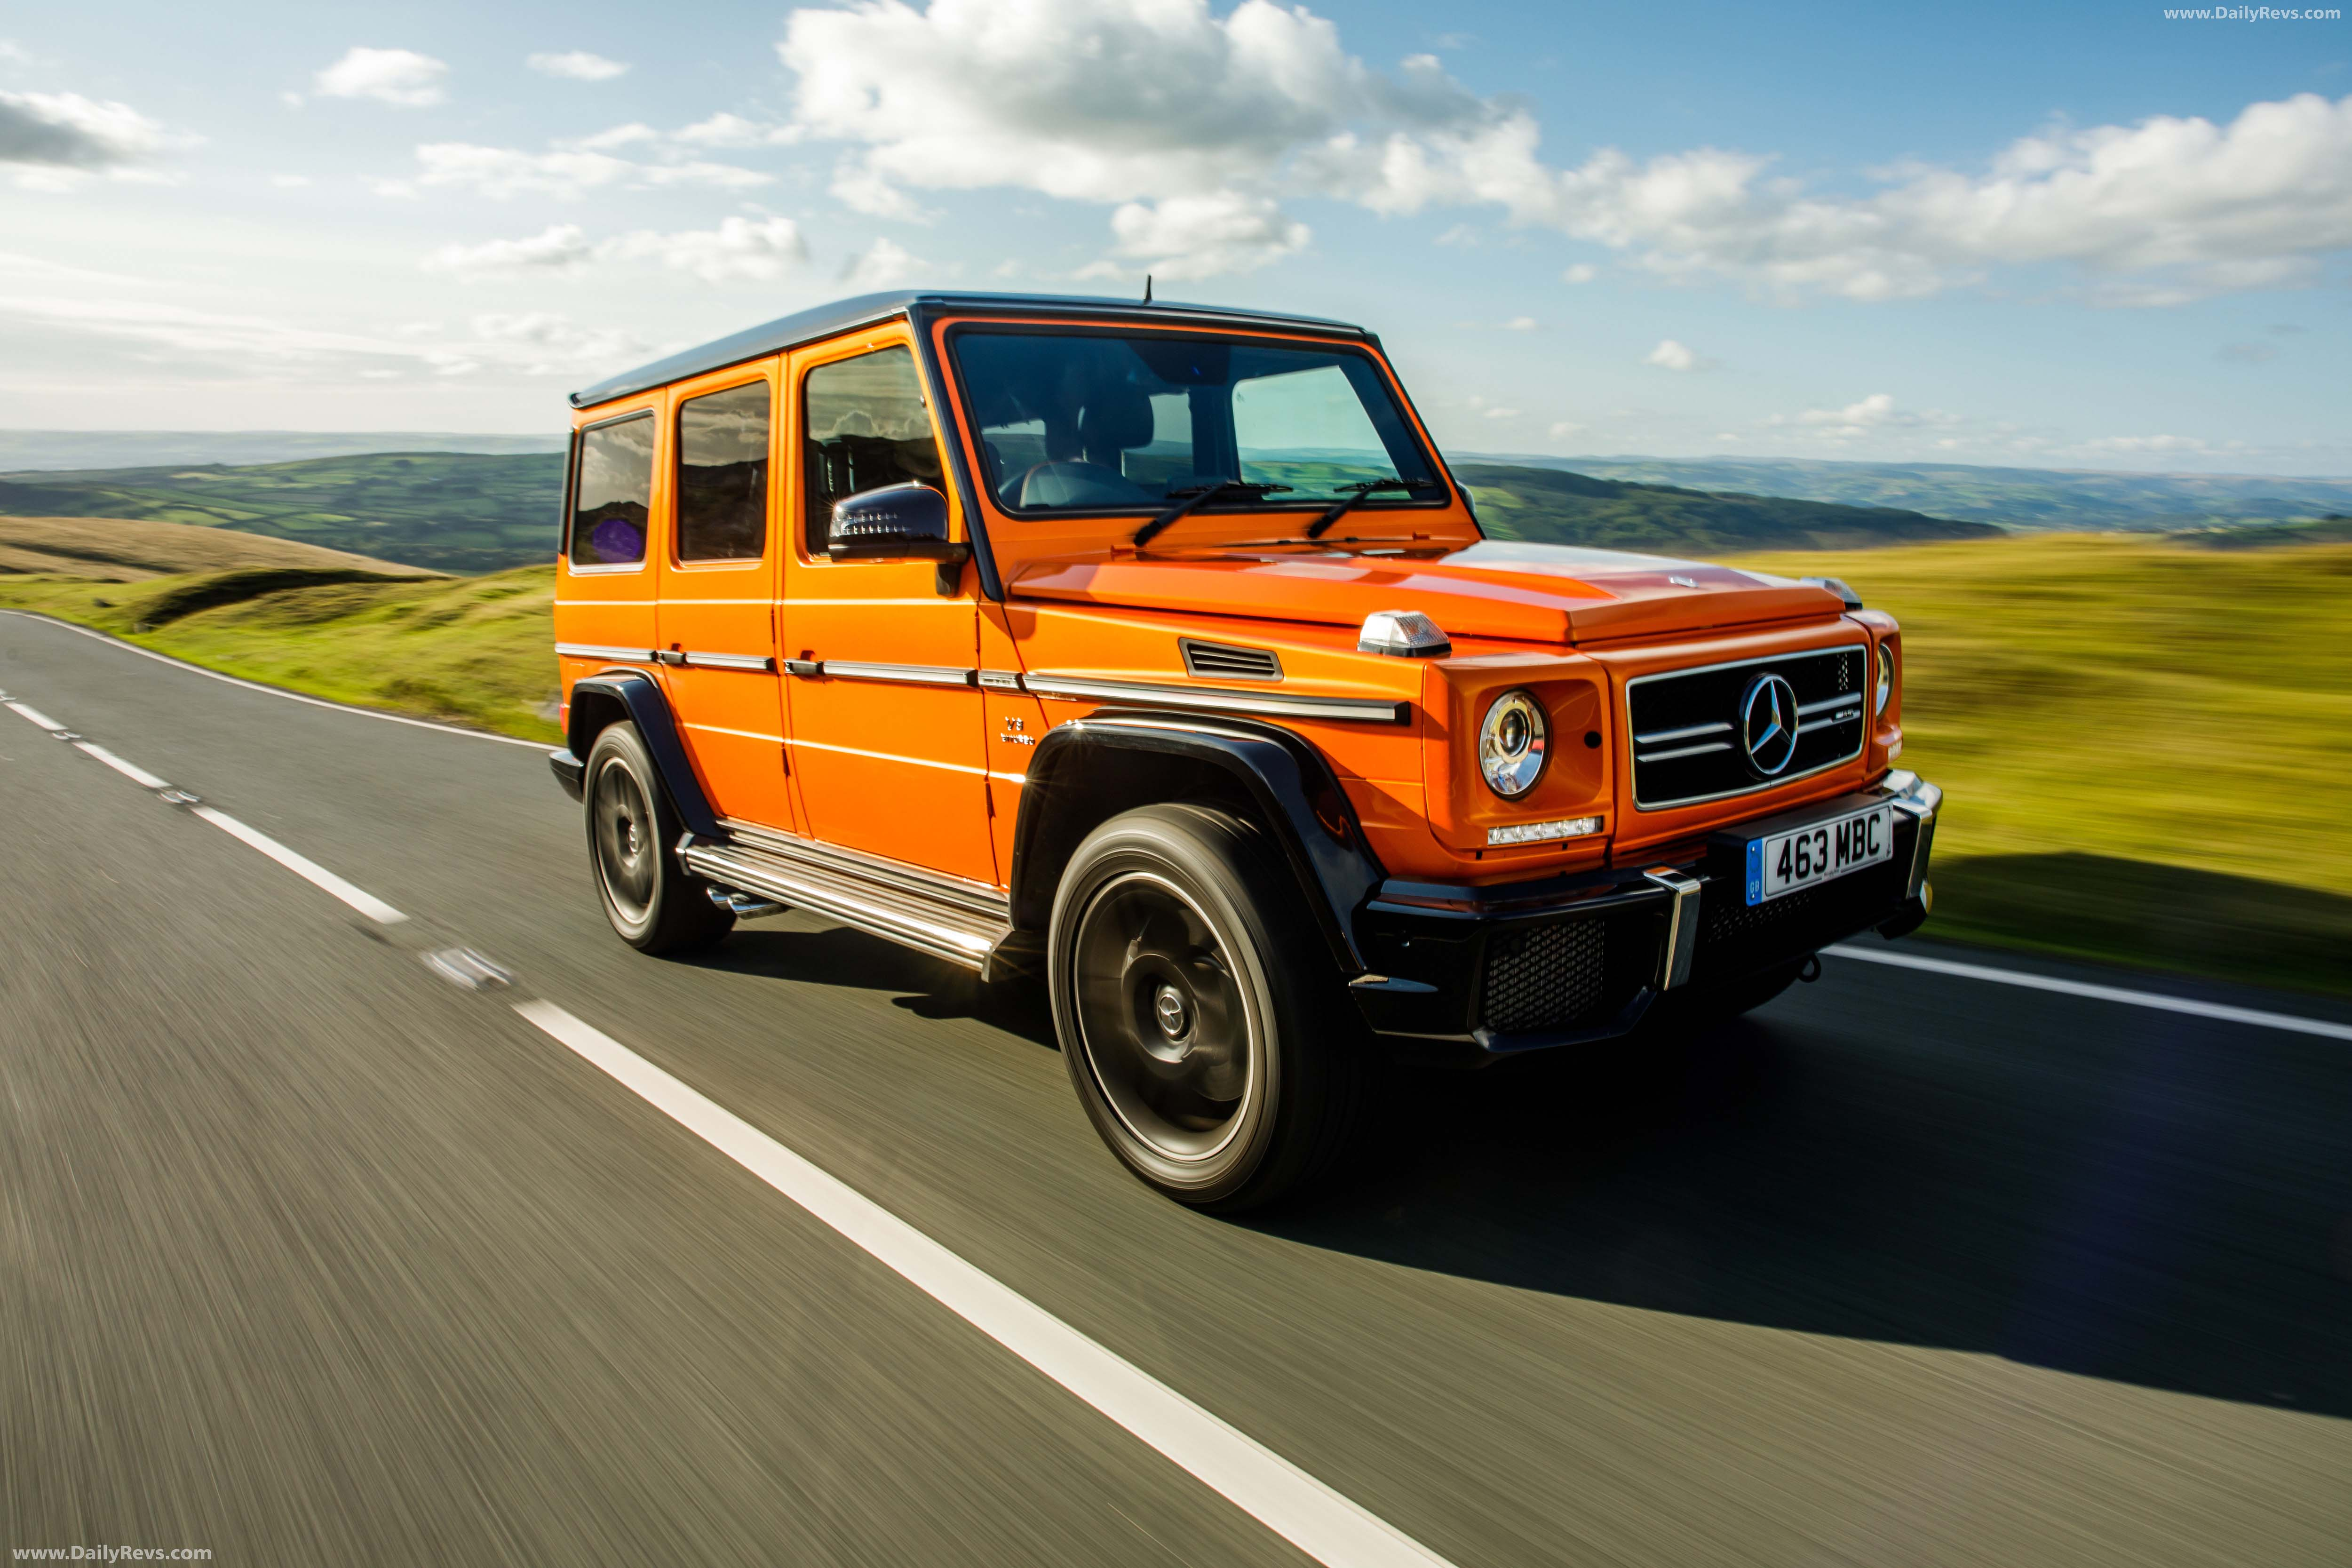 2019 Mercedes-Benz G63 AMG - HD Pictures,Specs,information and videos - Dailyrevs